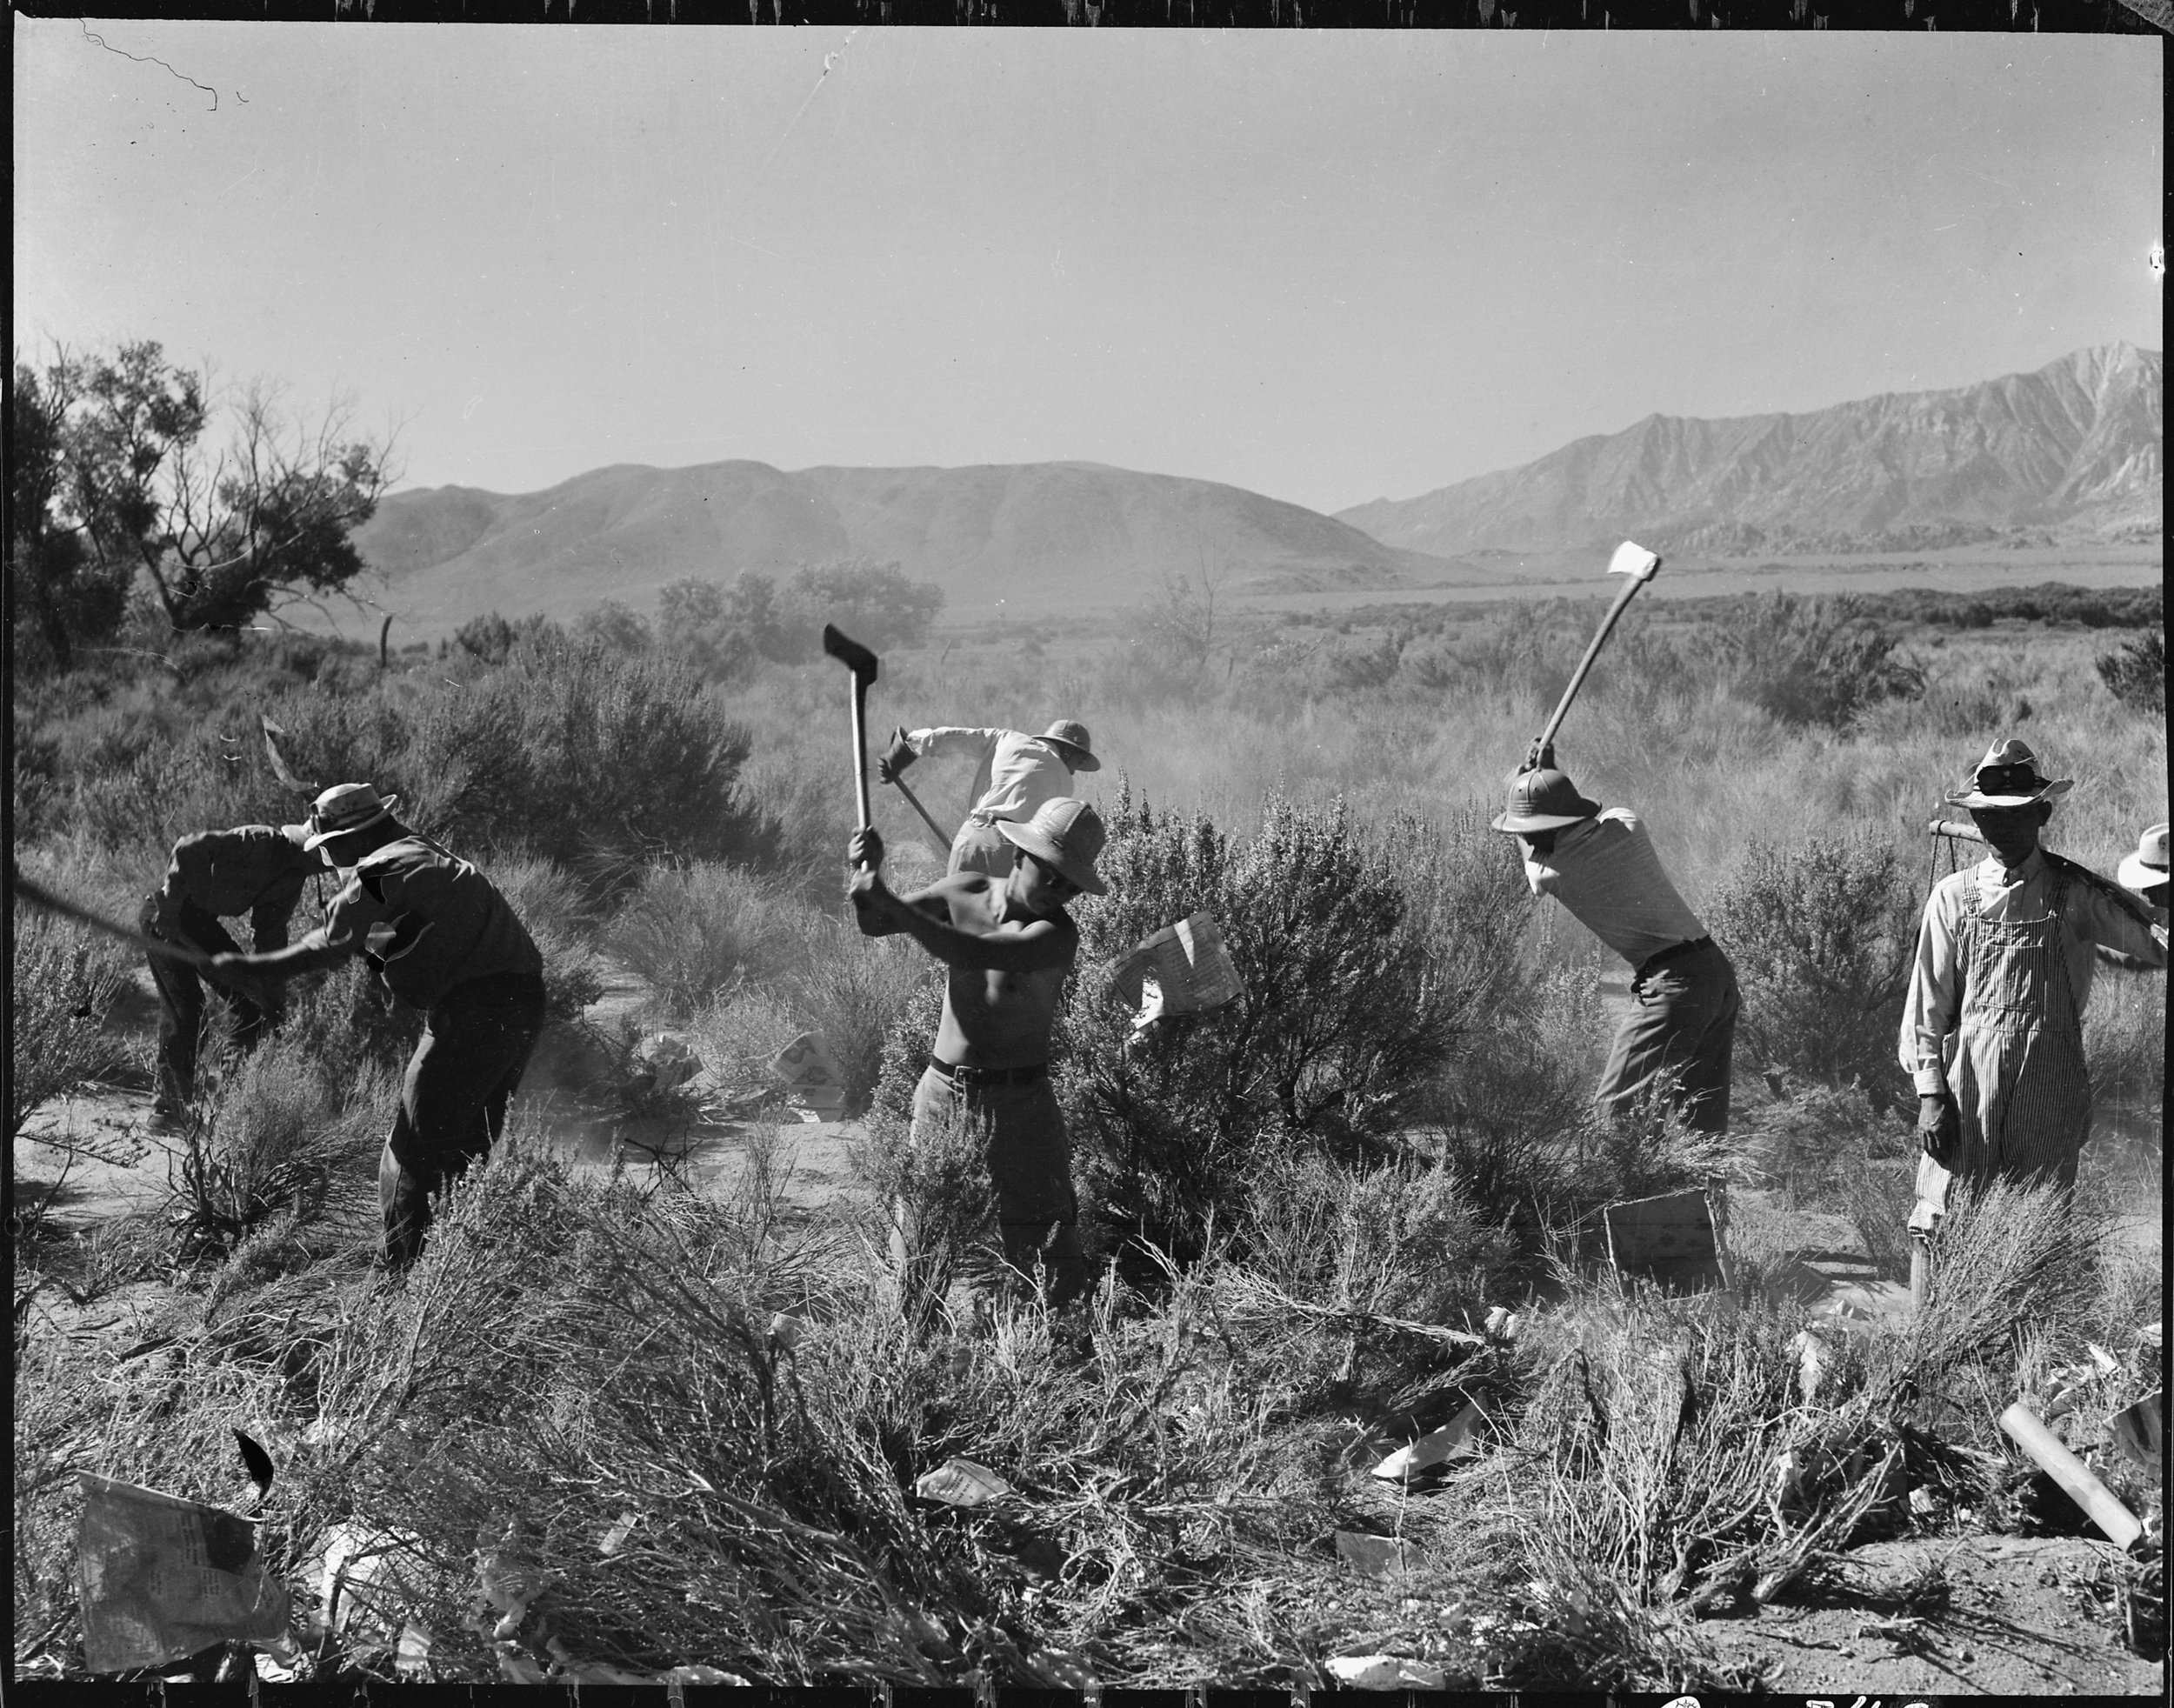 June 30, 1942 — Manzanar Relocation Center, Manzanar, California. More land is being cleared of sage brush at the southern end of the project to enlarge this War Relocation Authority center for evacuees of Japanese ancestry.